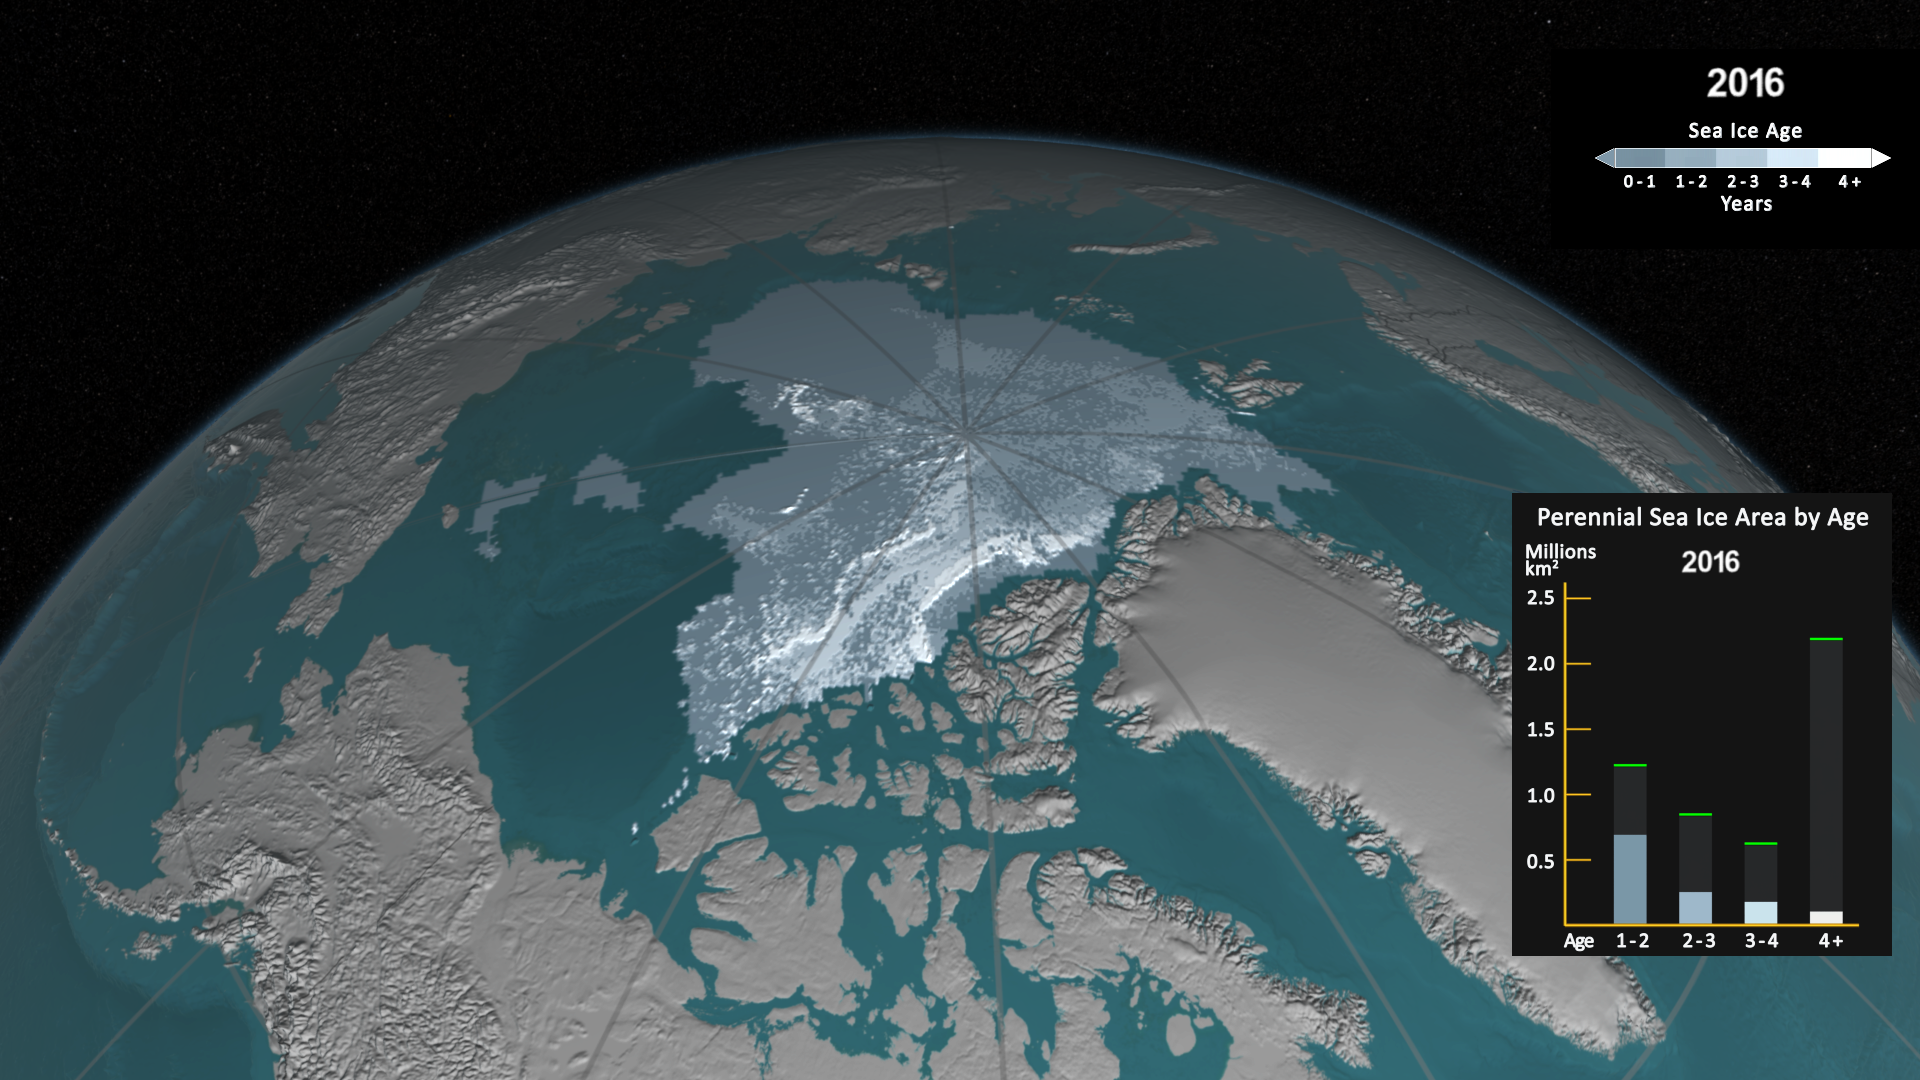 Perennial Sea Ice Area by Age 2016